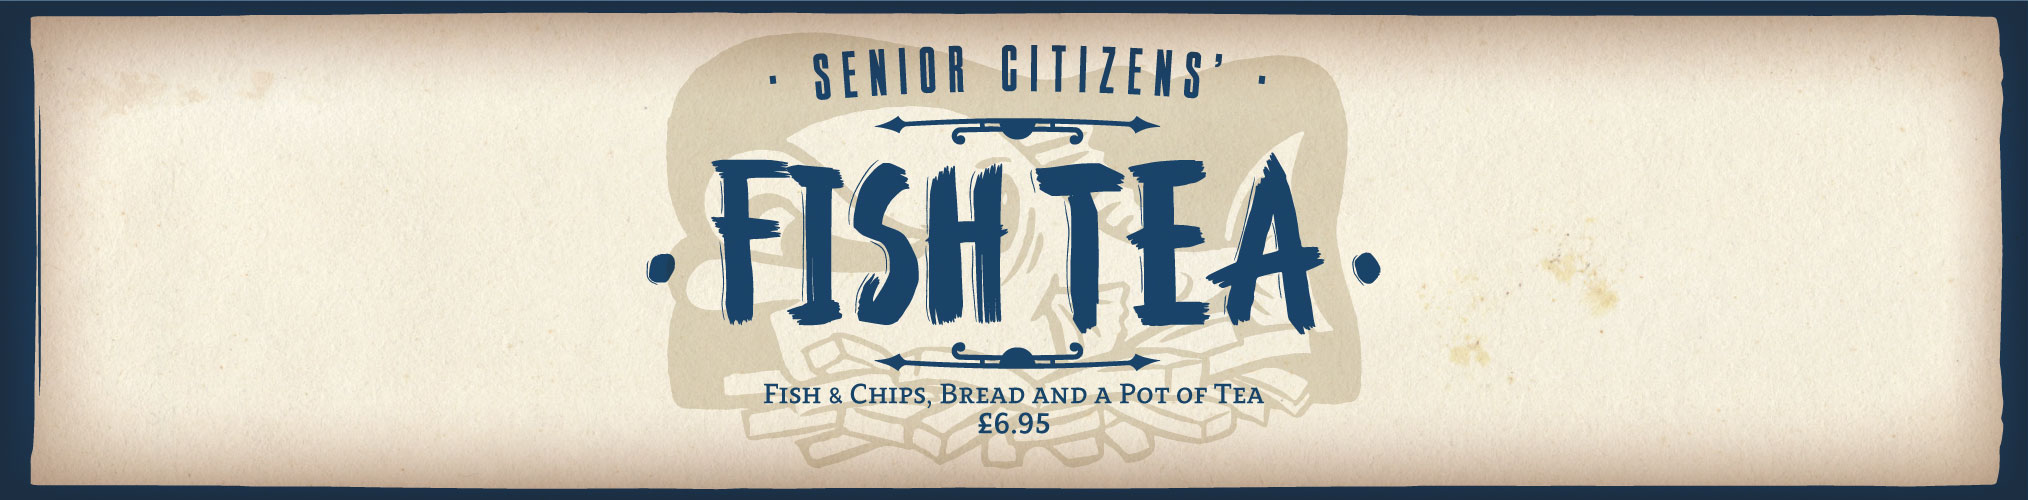 Senior-Citizens-Fish-Tea